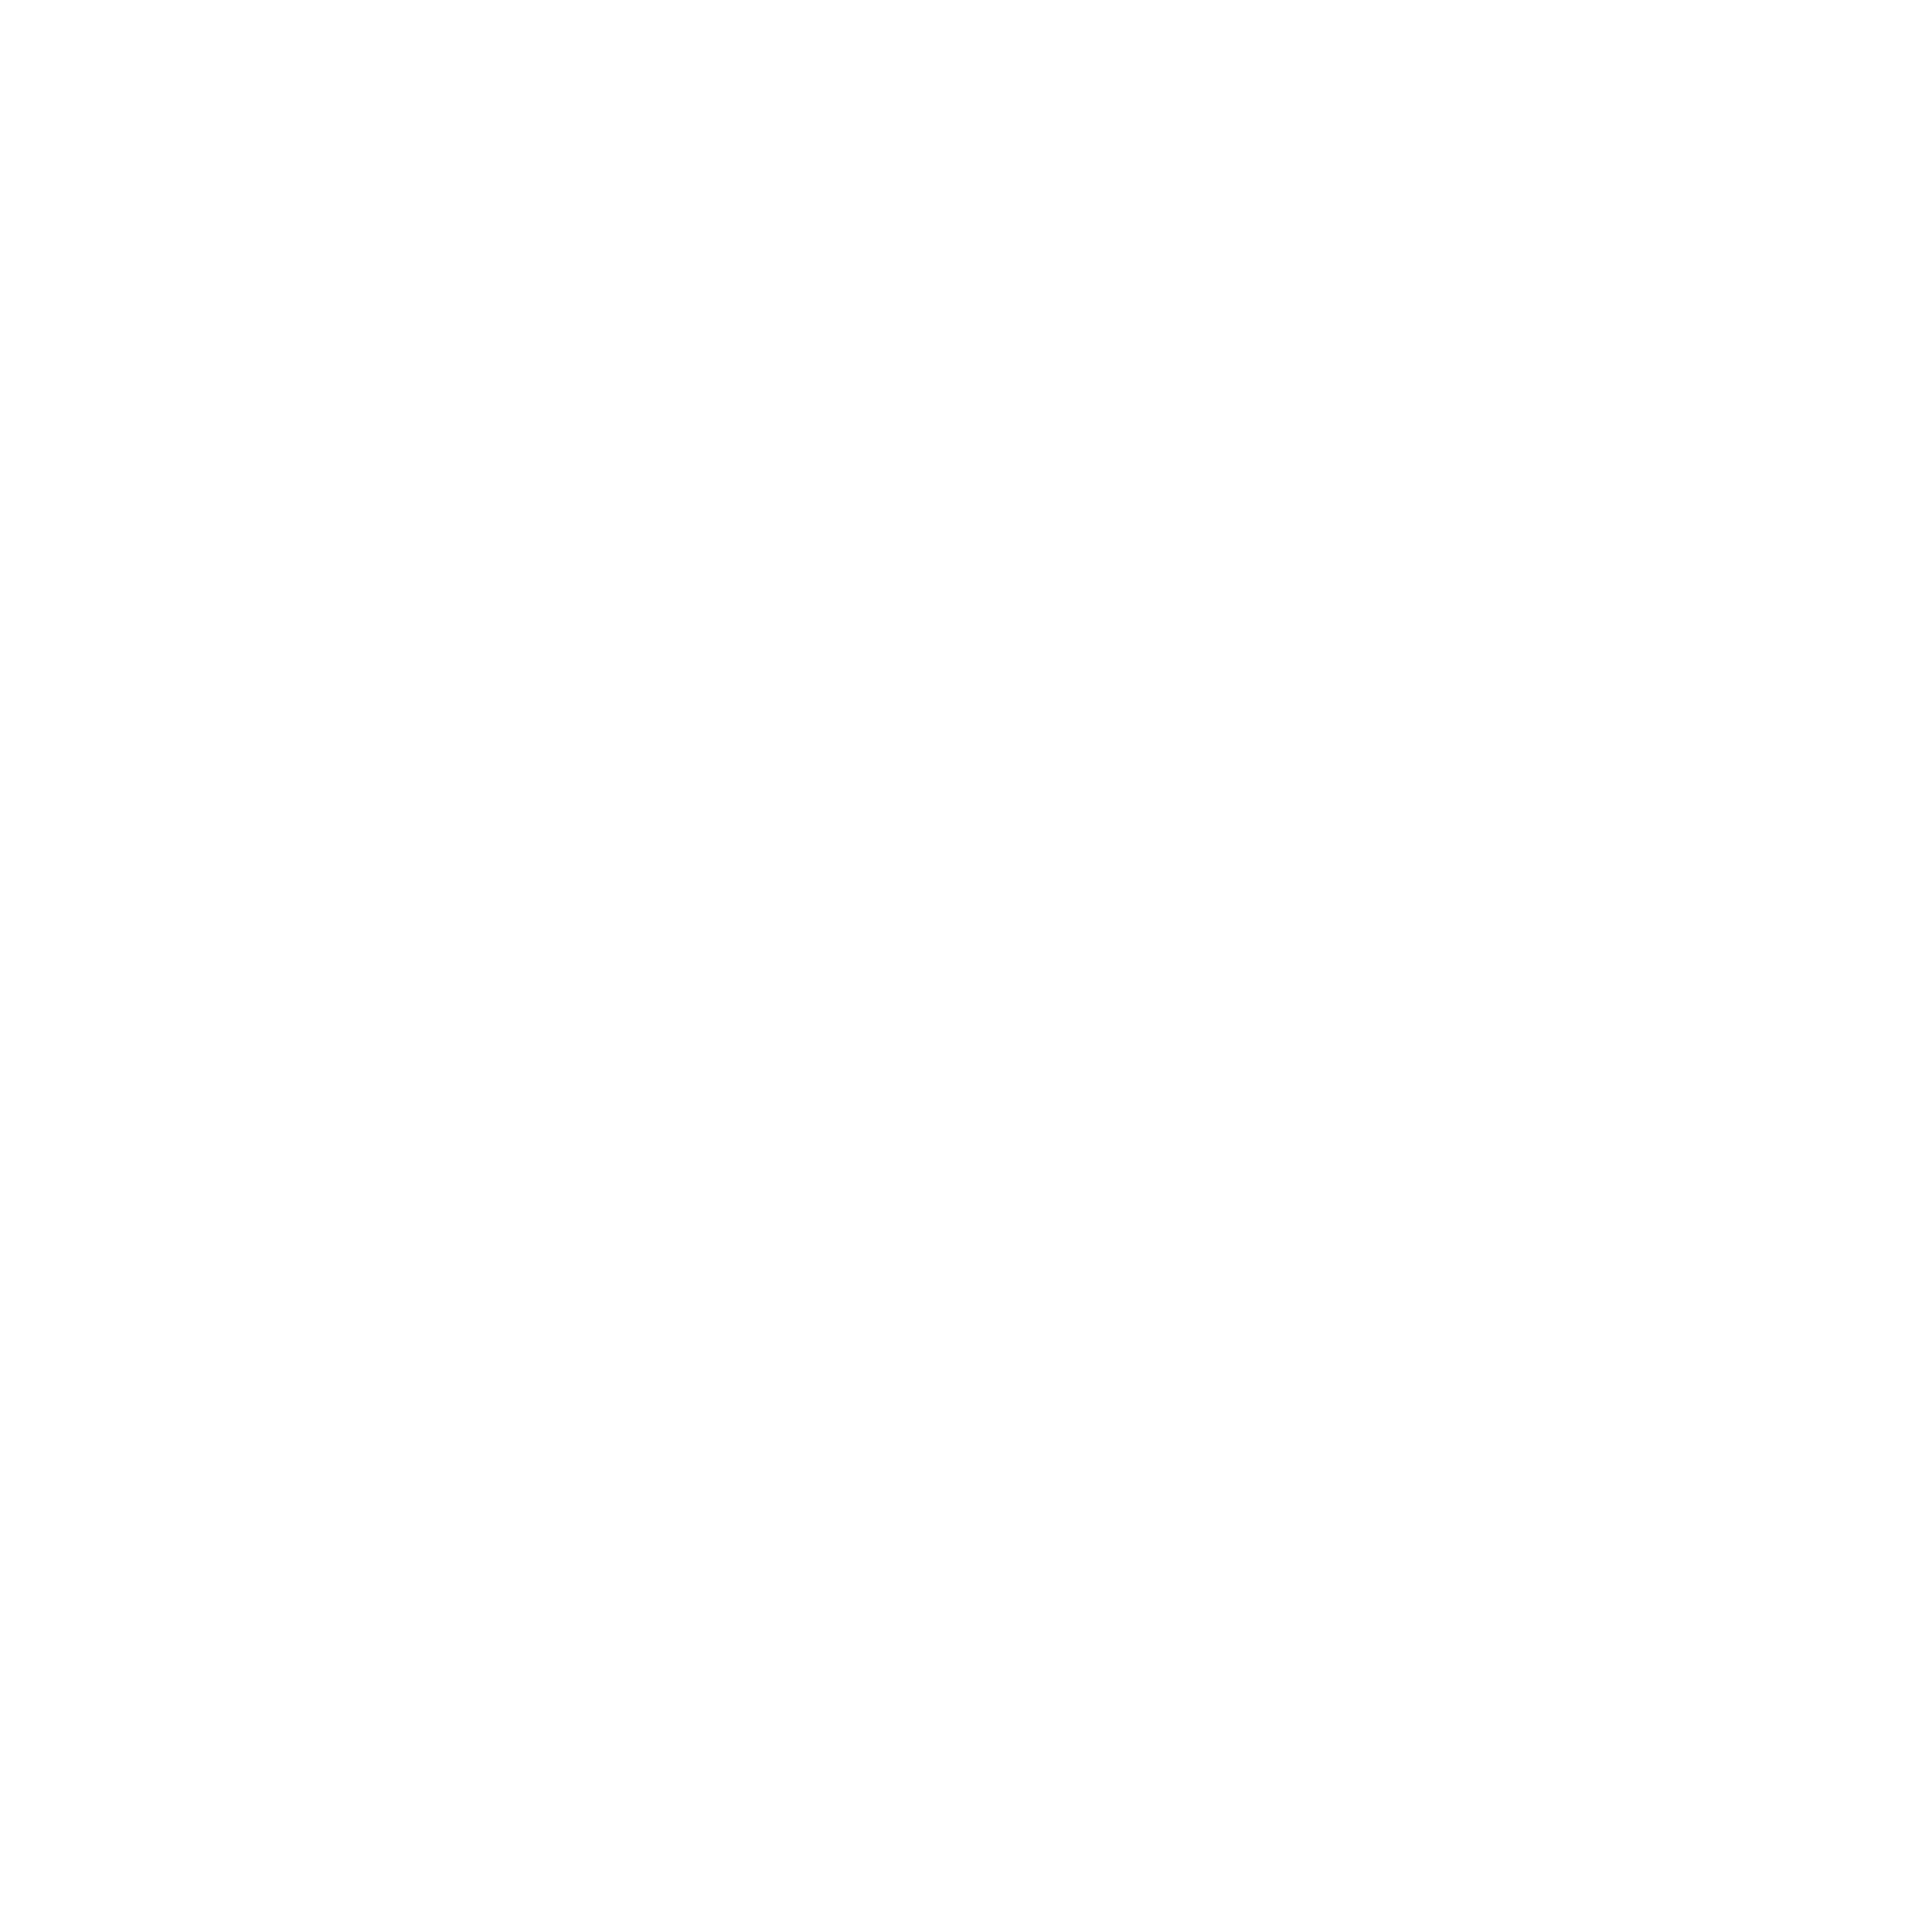 JC MANAGEMENT